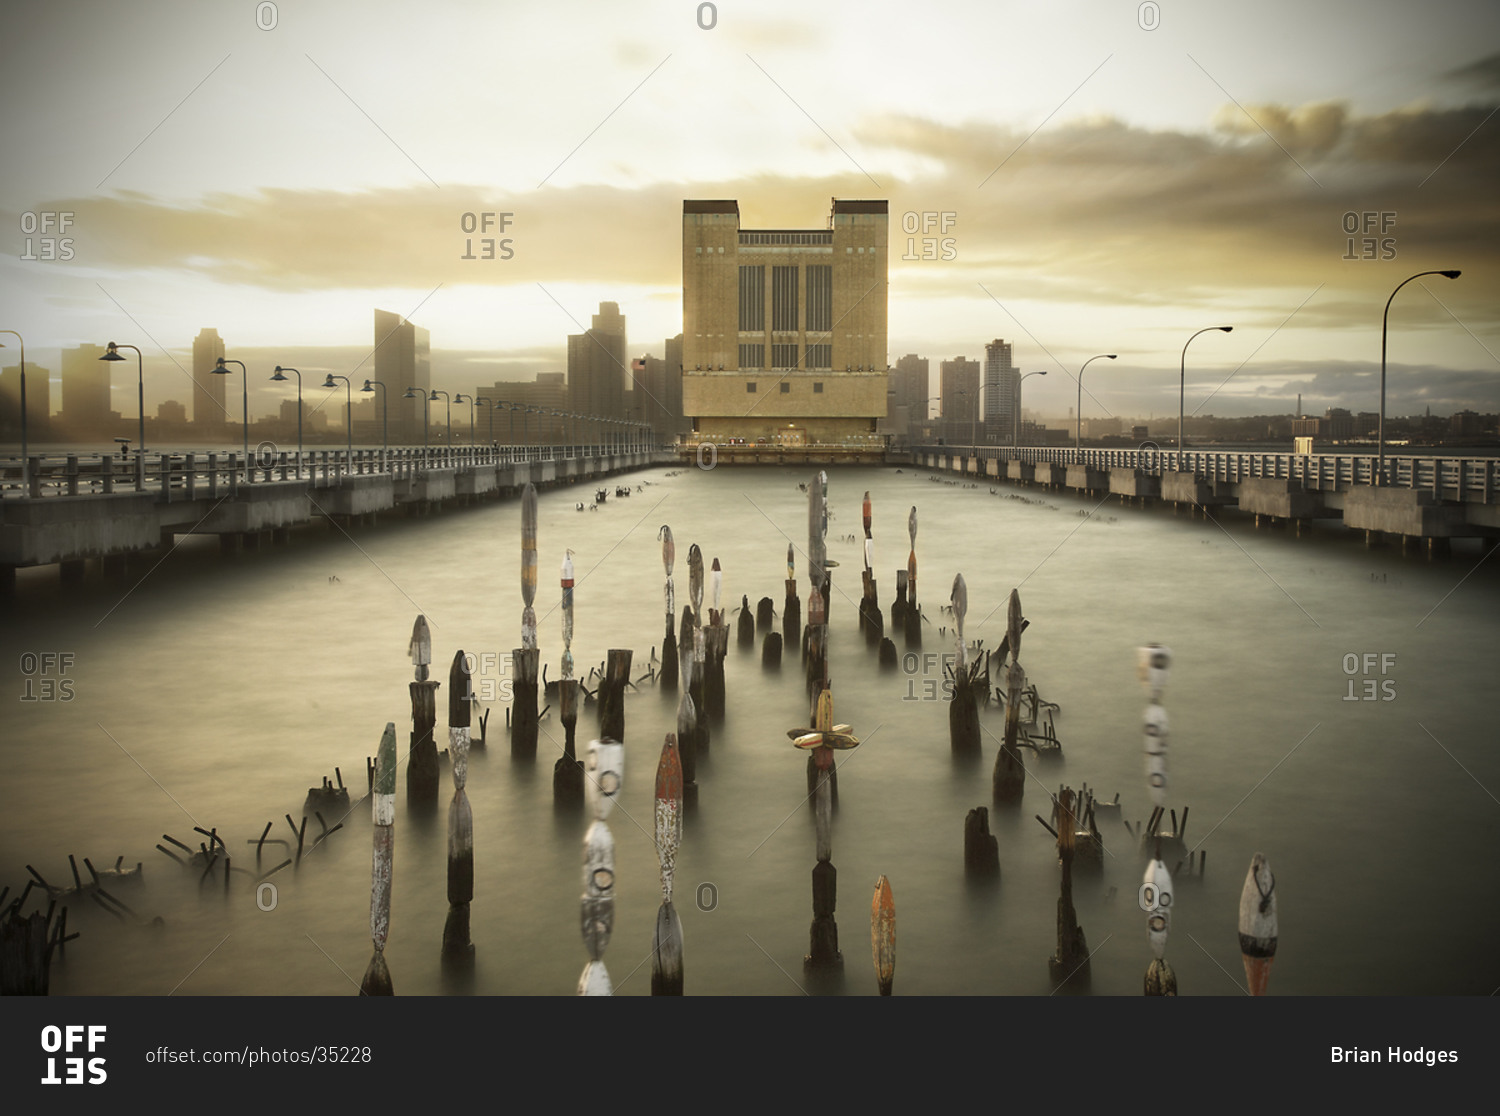 View of Pier 34 above the Holland Tunnel in New York City